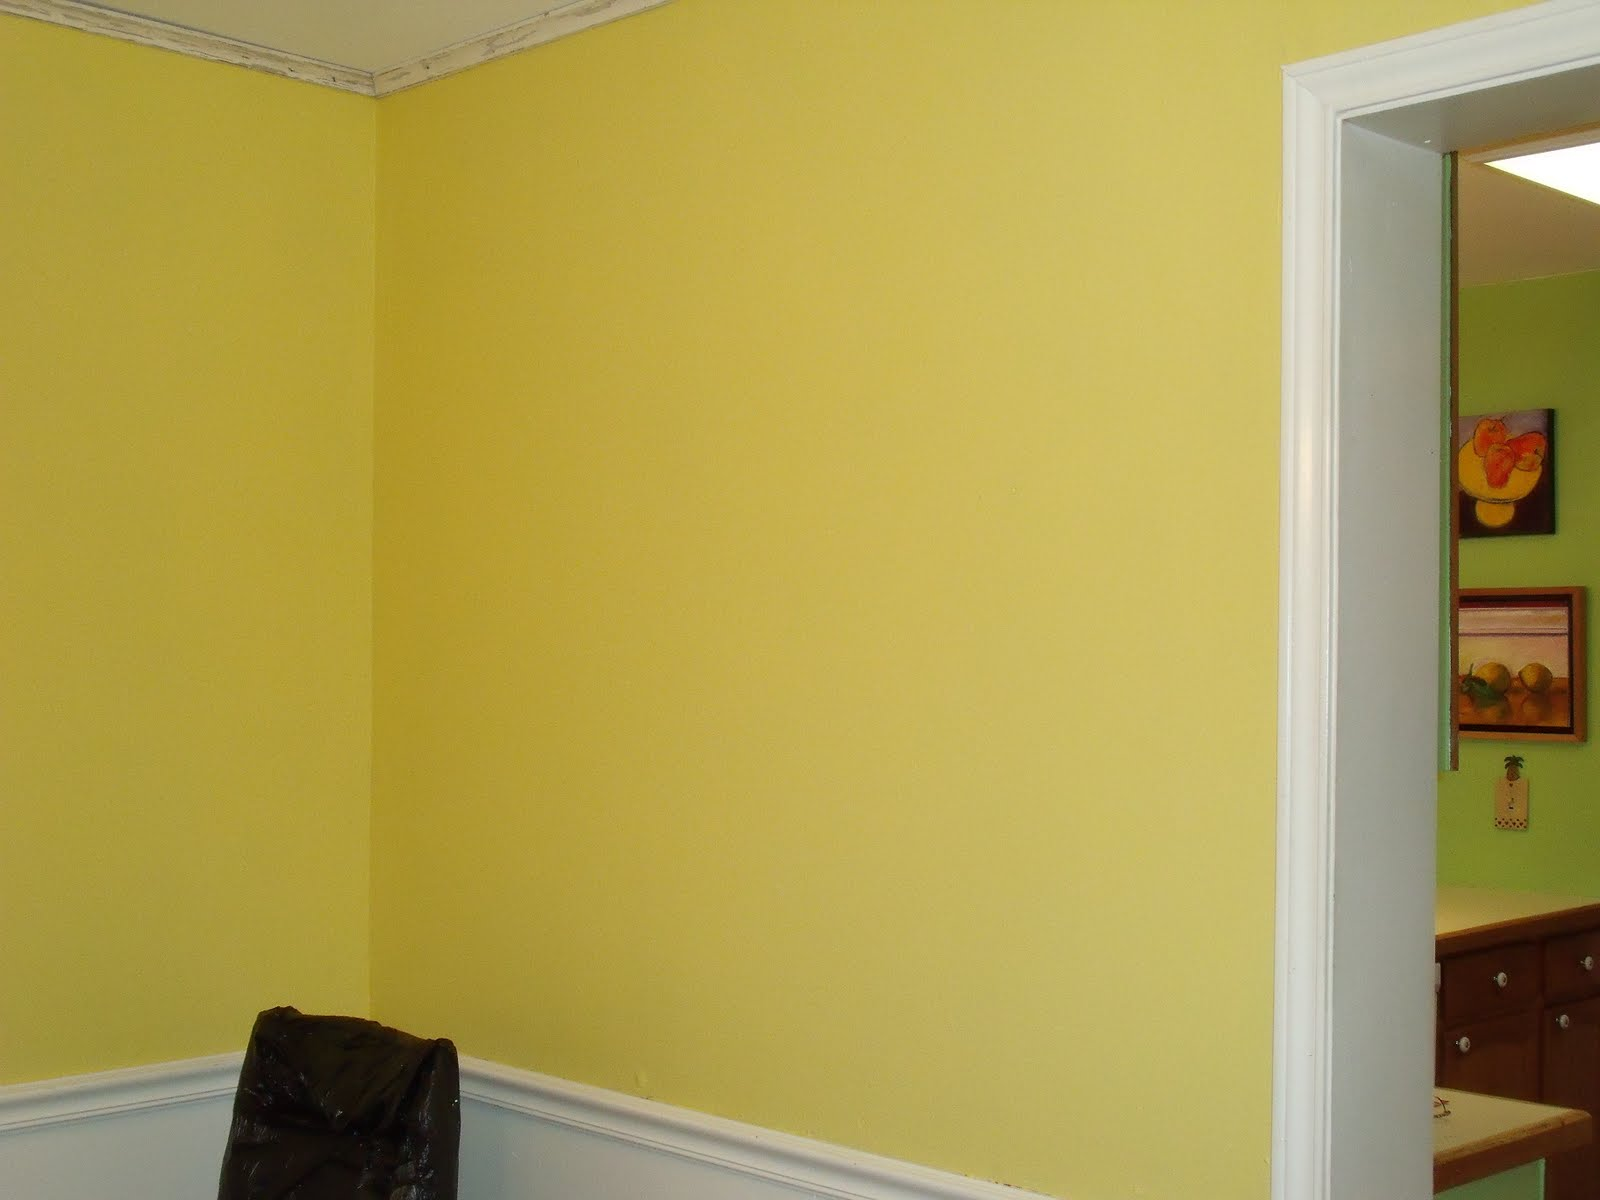 Image gallery sherwin williams yellow for Sherwin williams yellow paint colors